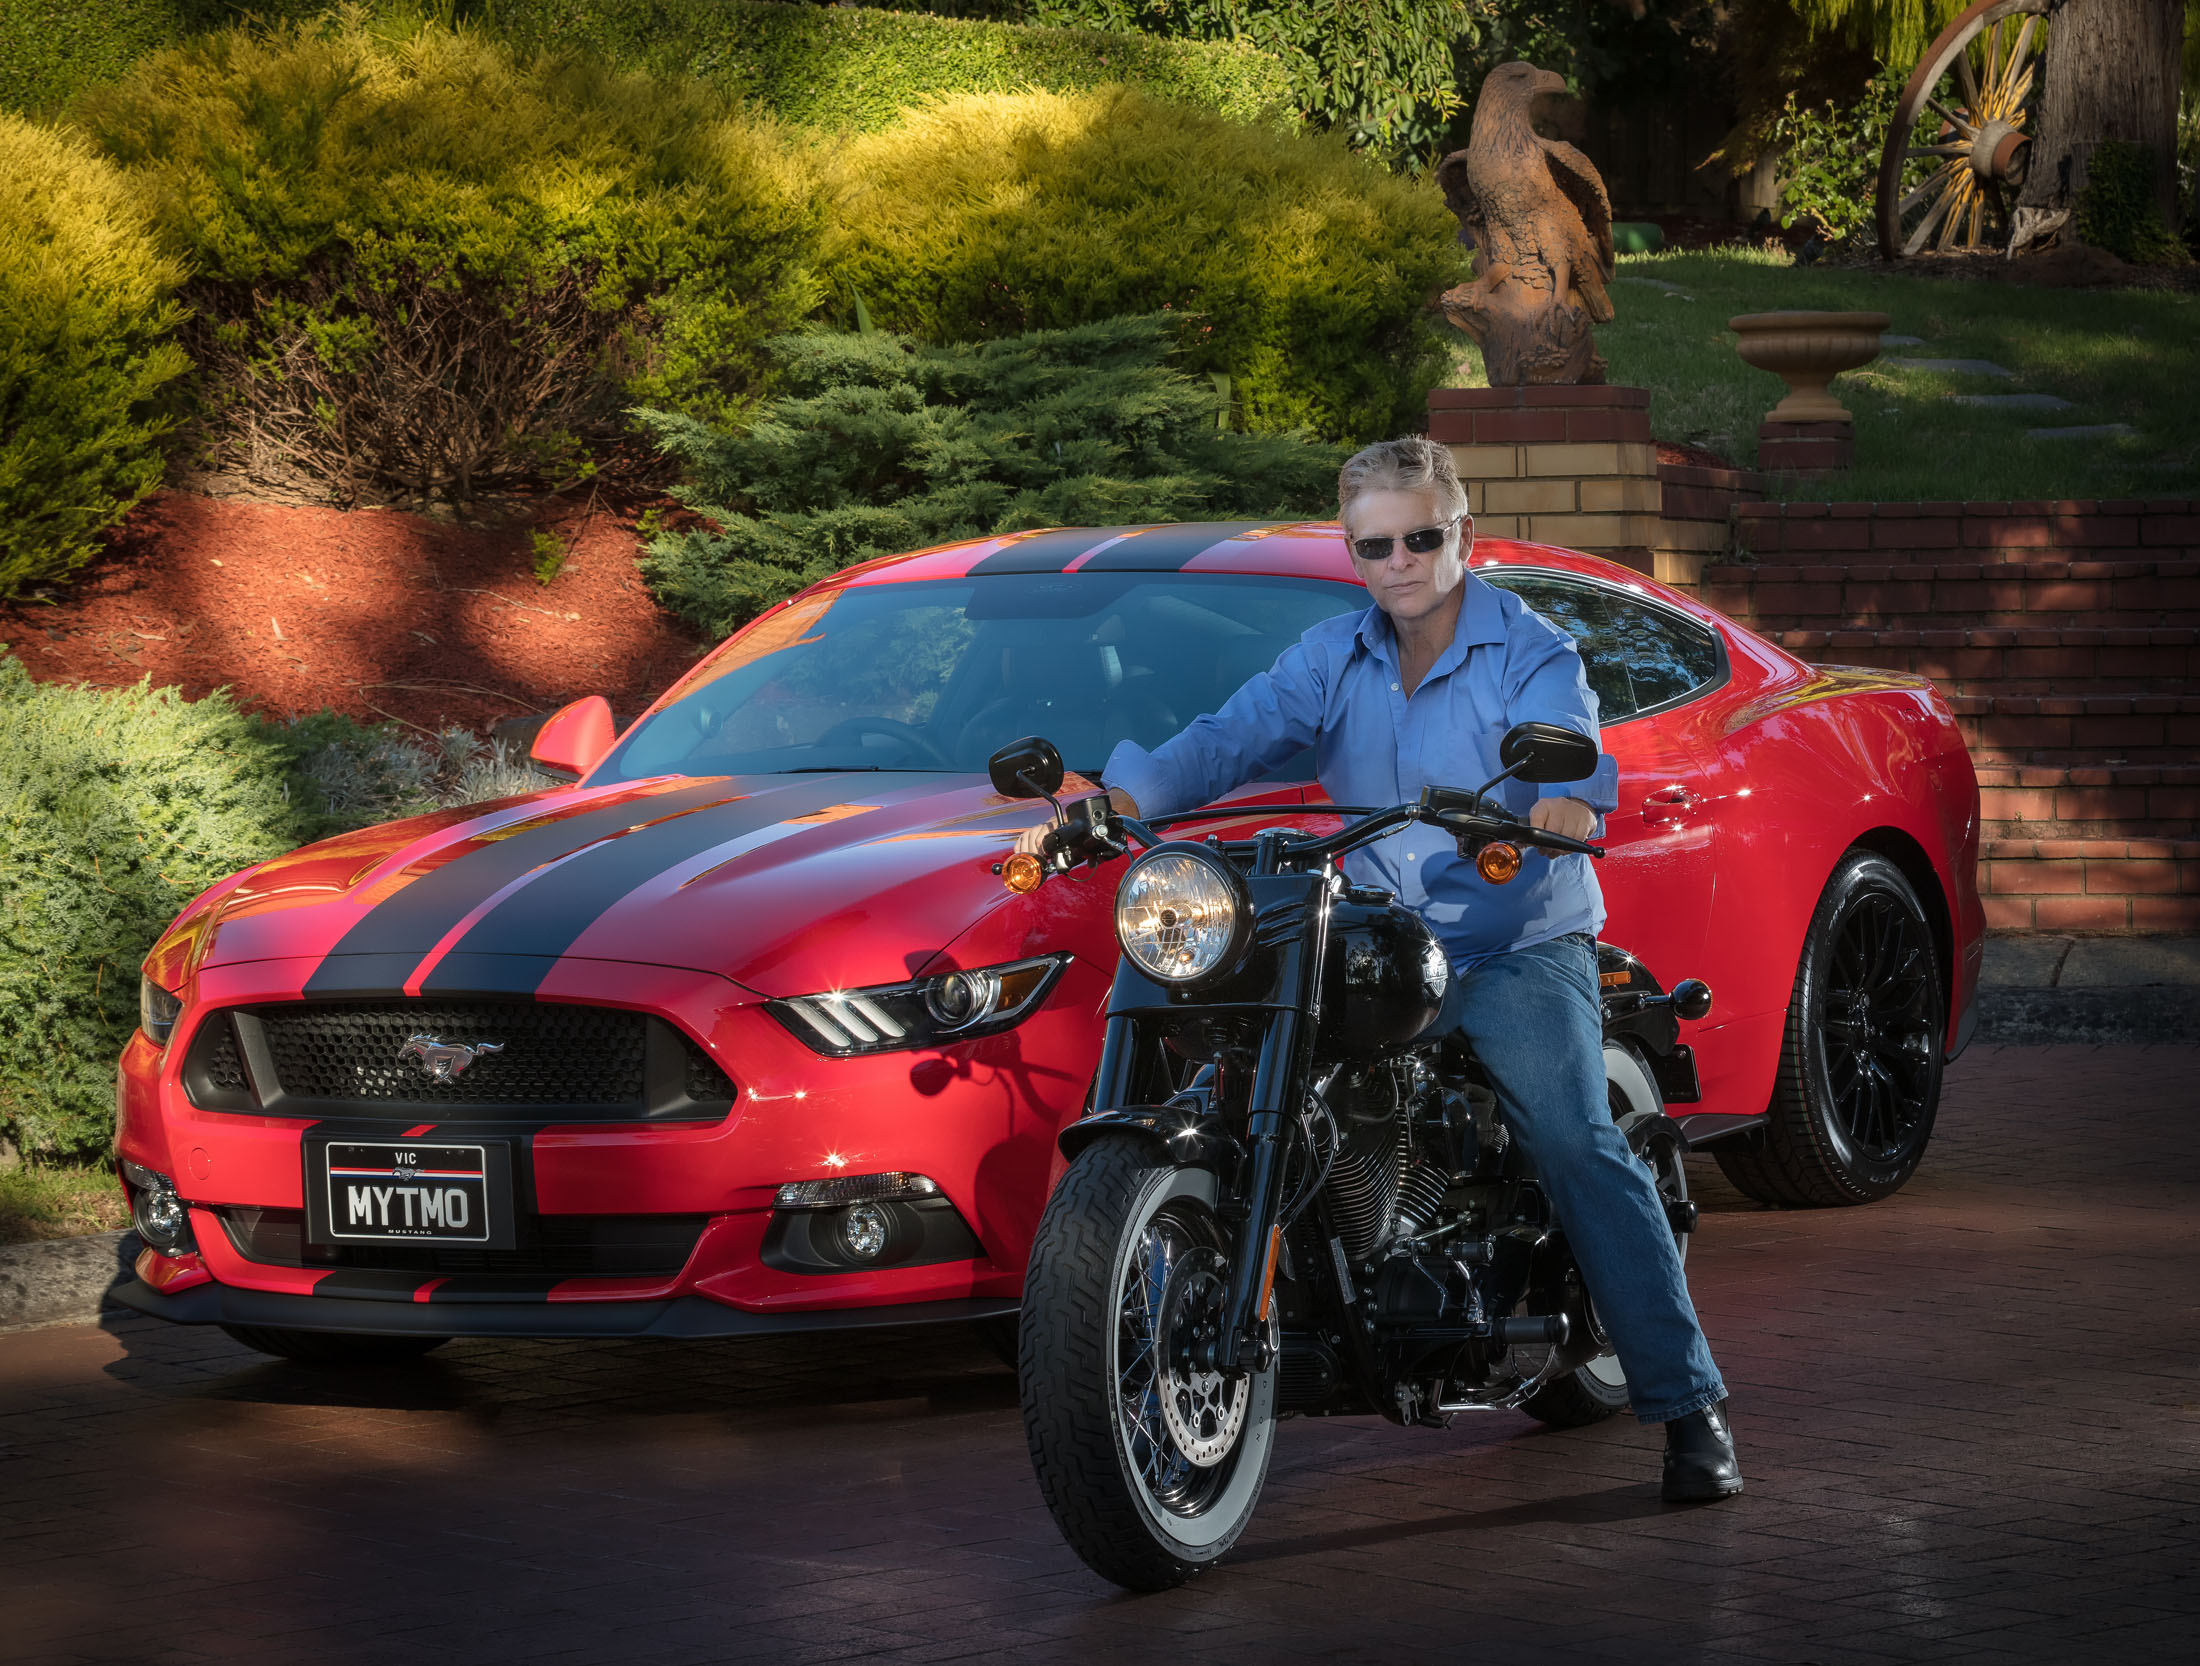 Environment portrait of John and his motorcycle and Mustang 2